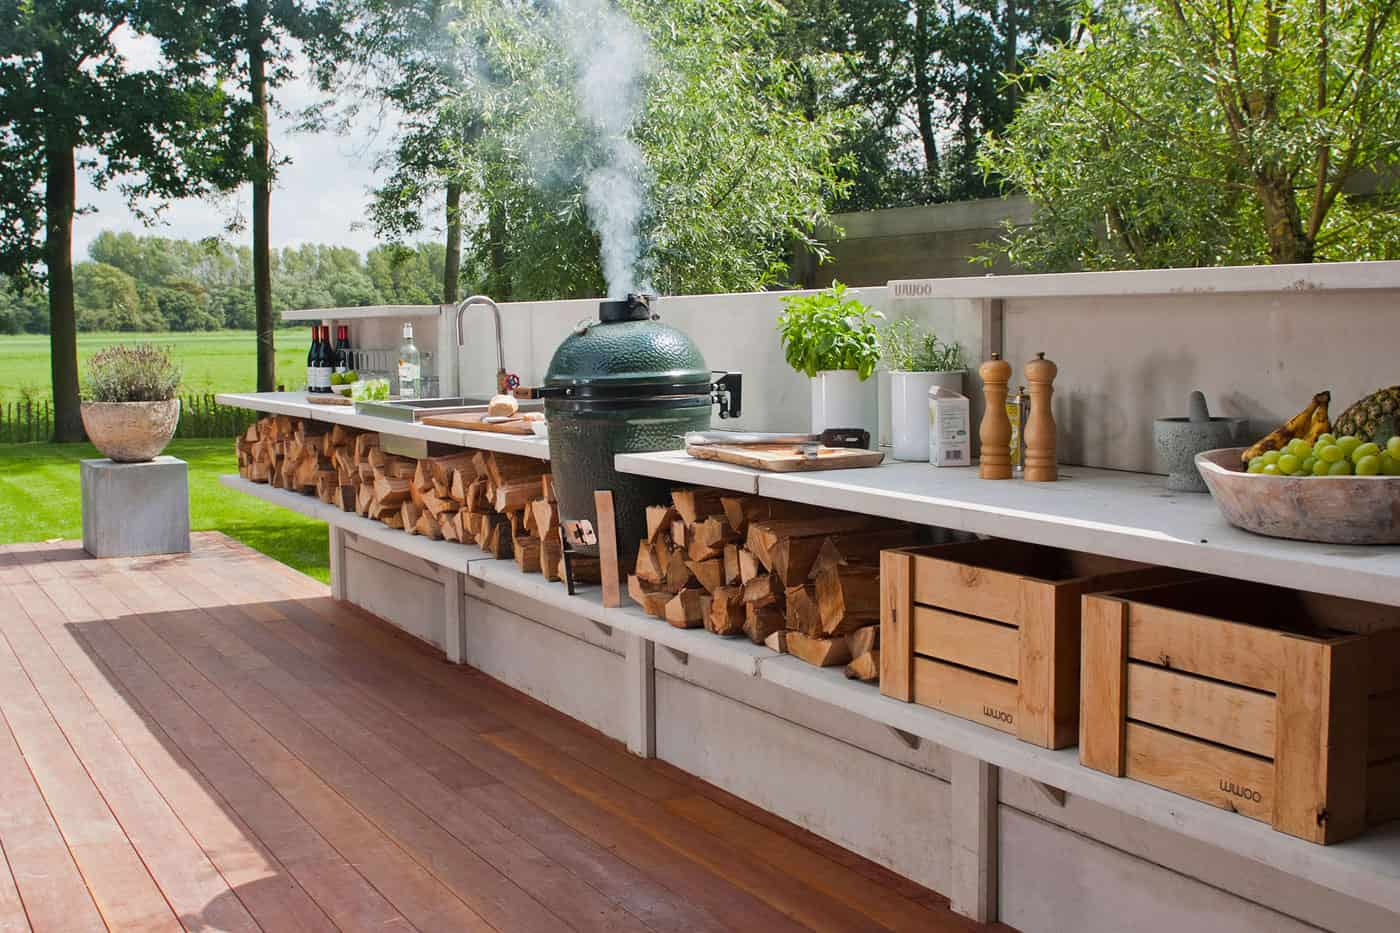 15 Outdoor Kitchen Designs That You Can Help DIY on Patio Kitchen Diy  id=29469